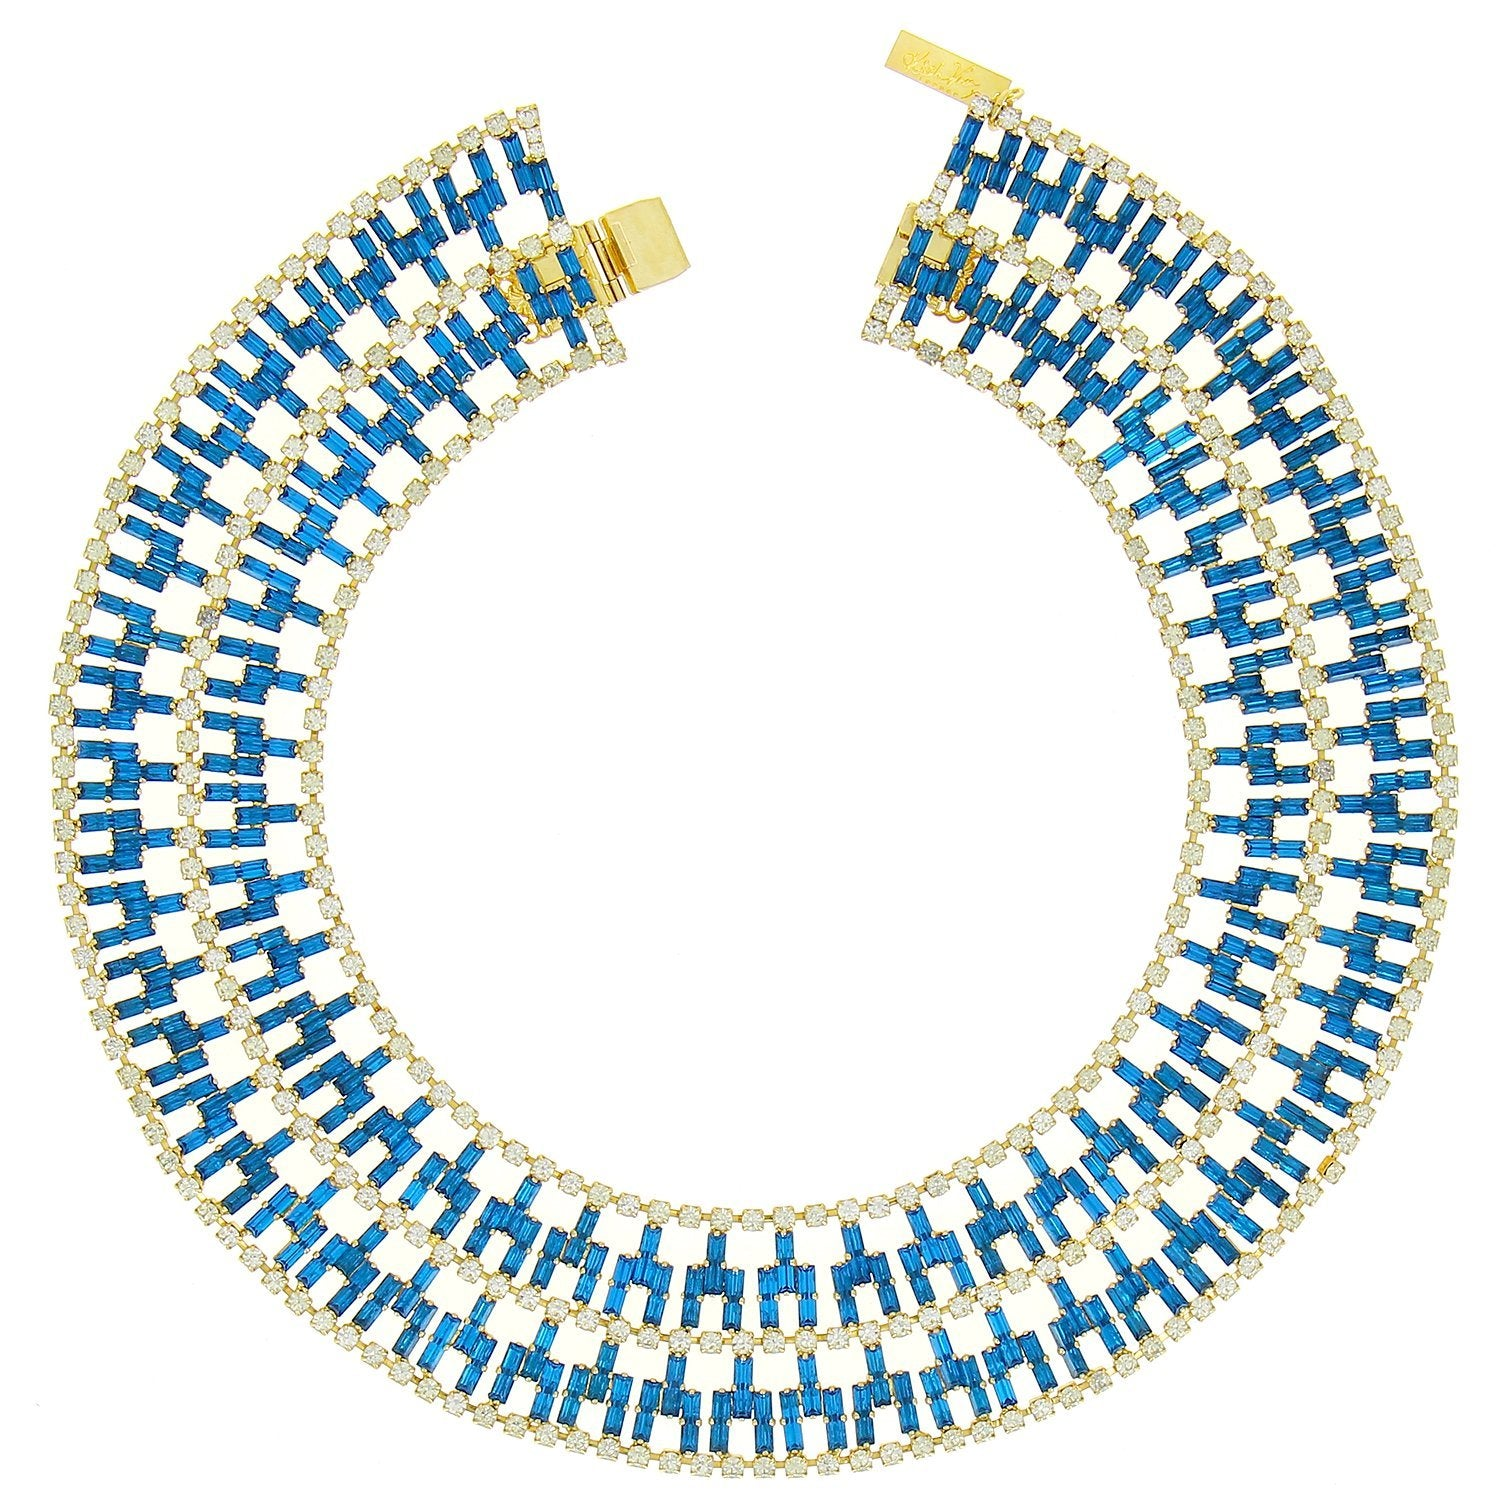 Nefertiti Peacock Blue Necklace